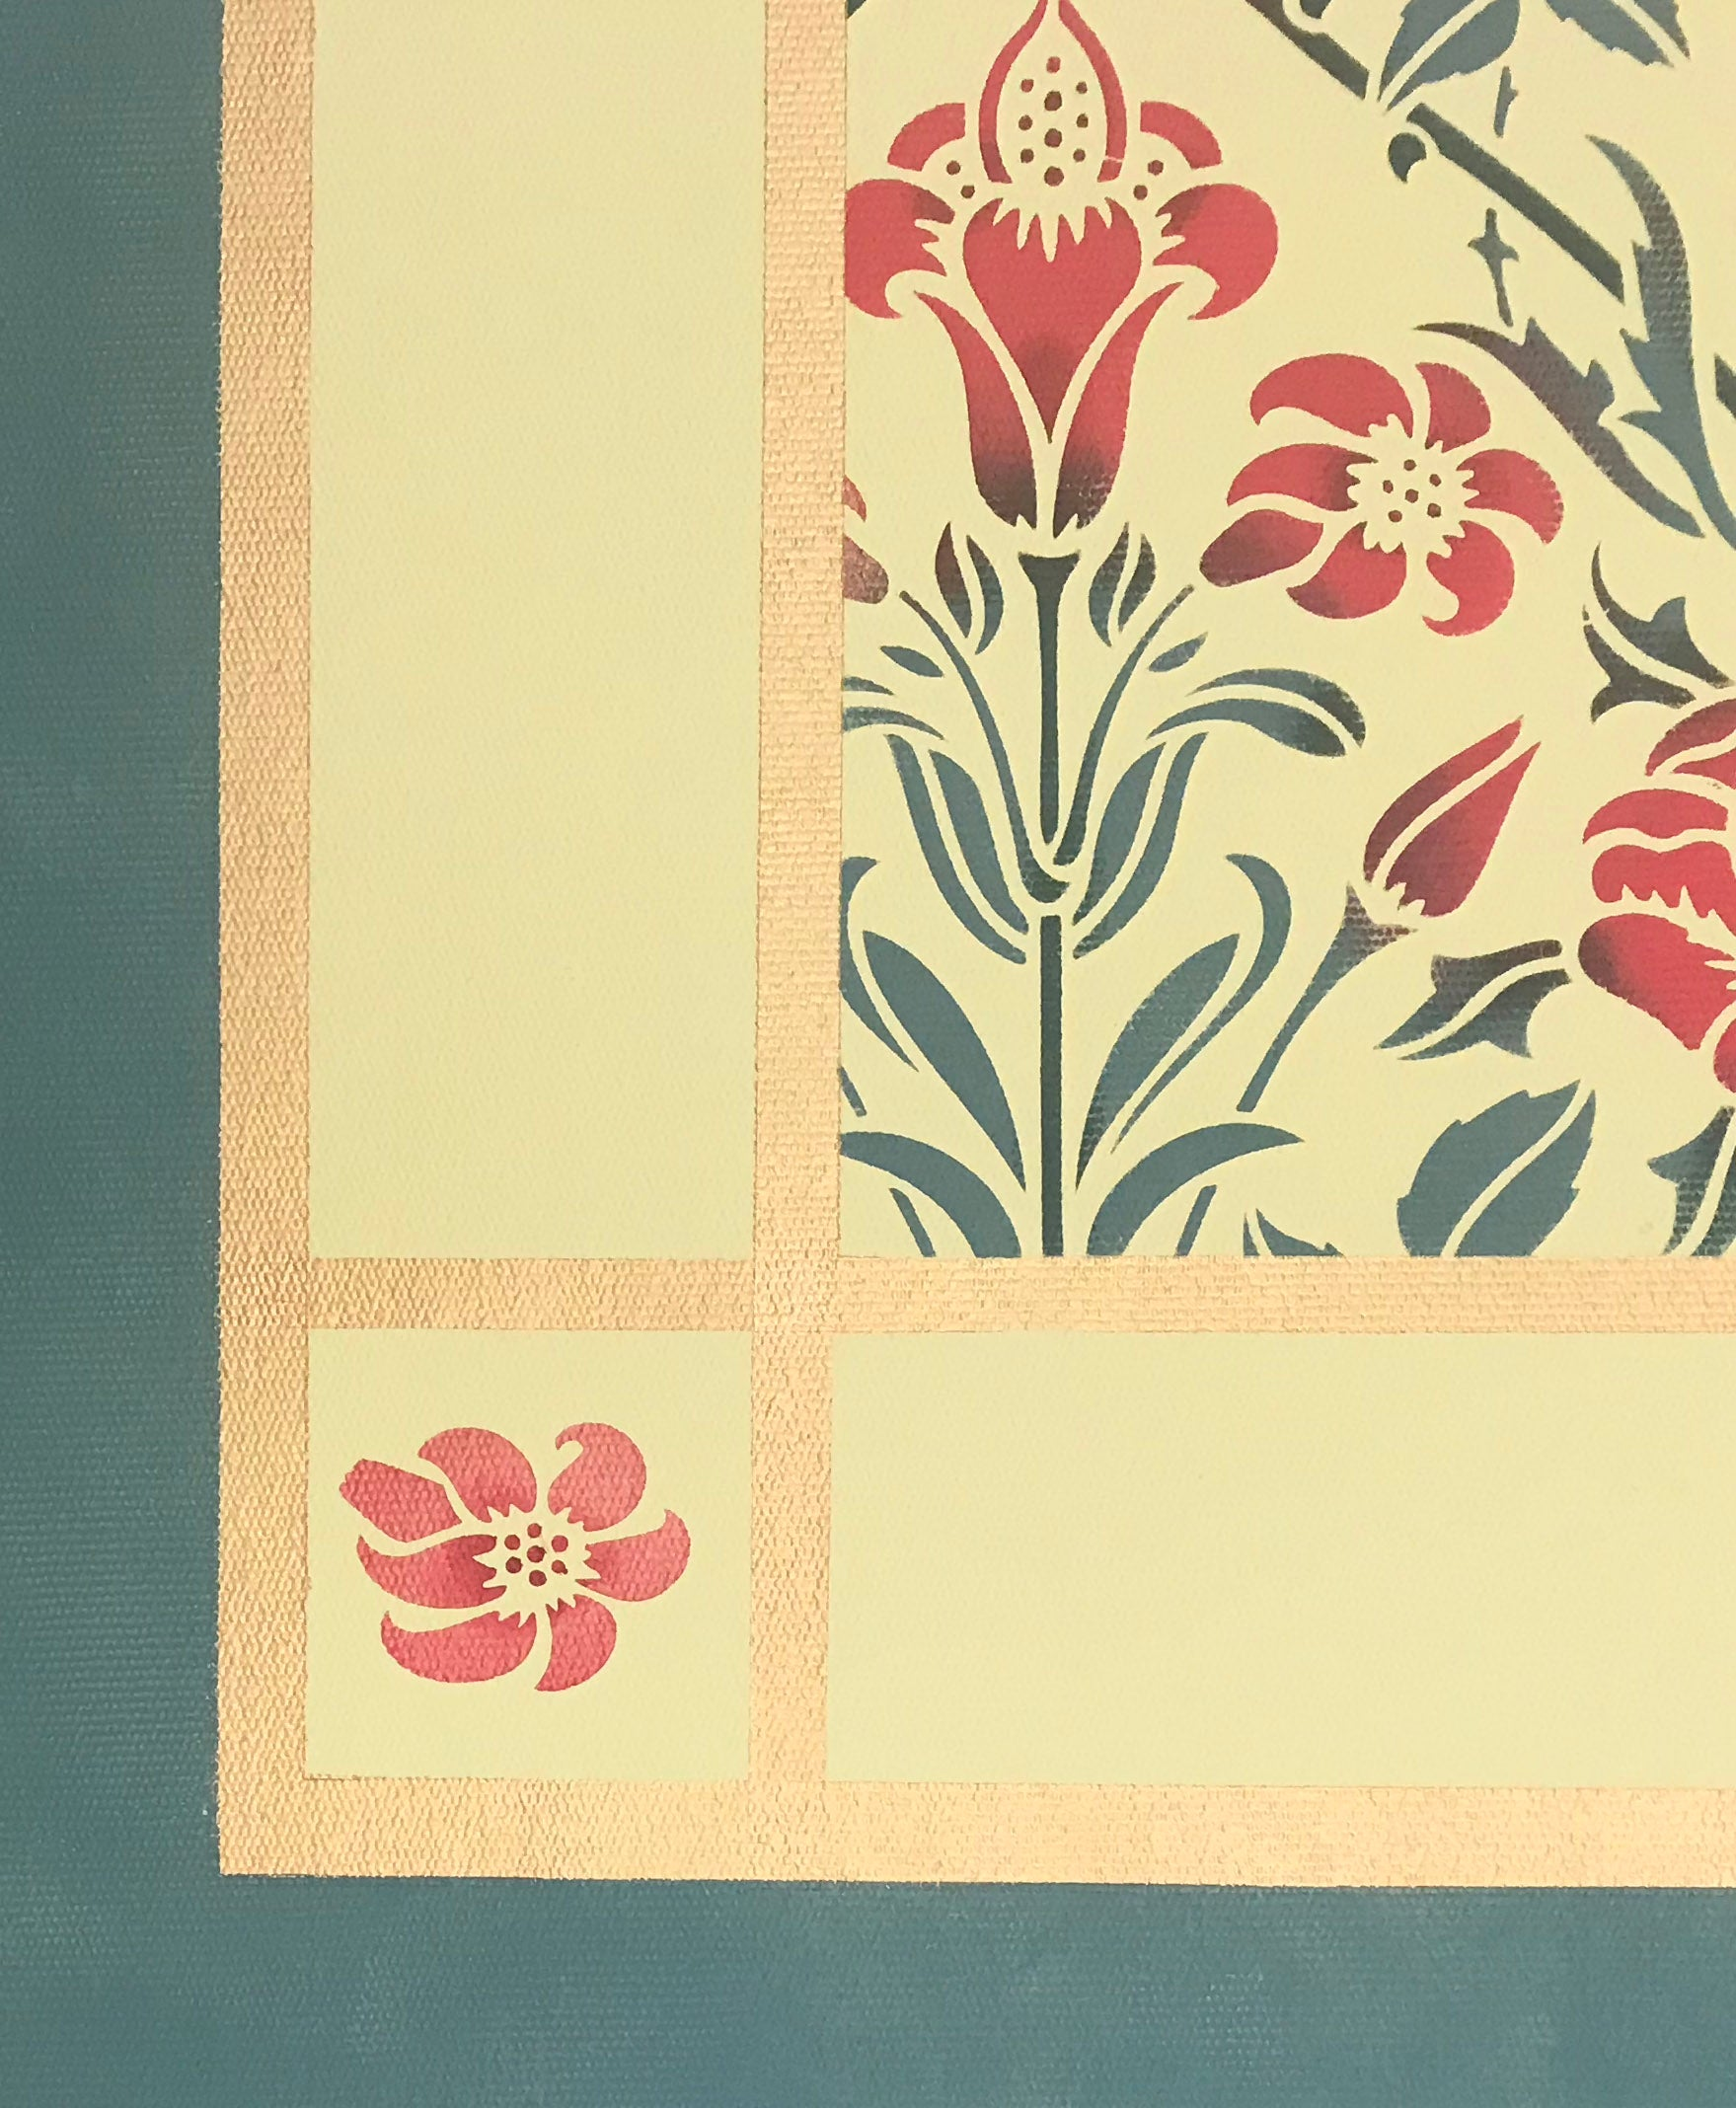 The corner of this floorcloth with a floral motif with a lattice of roses.